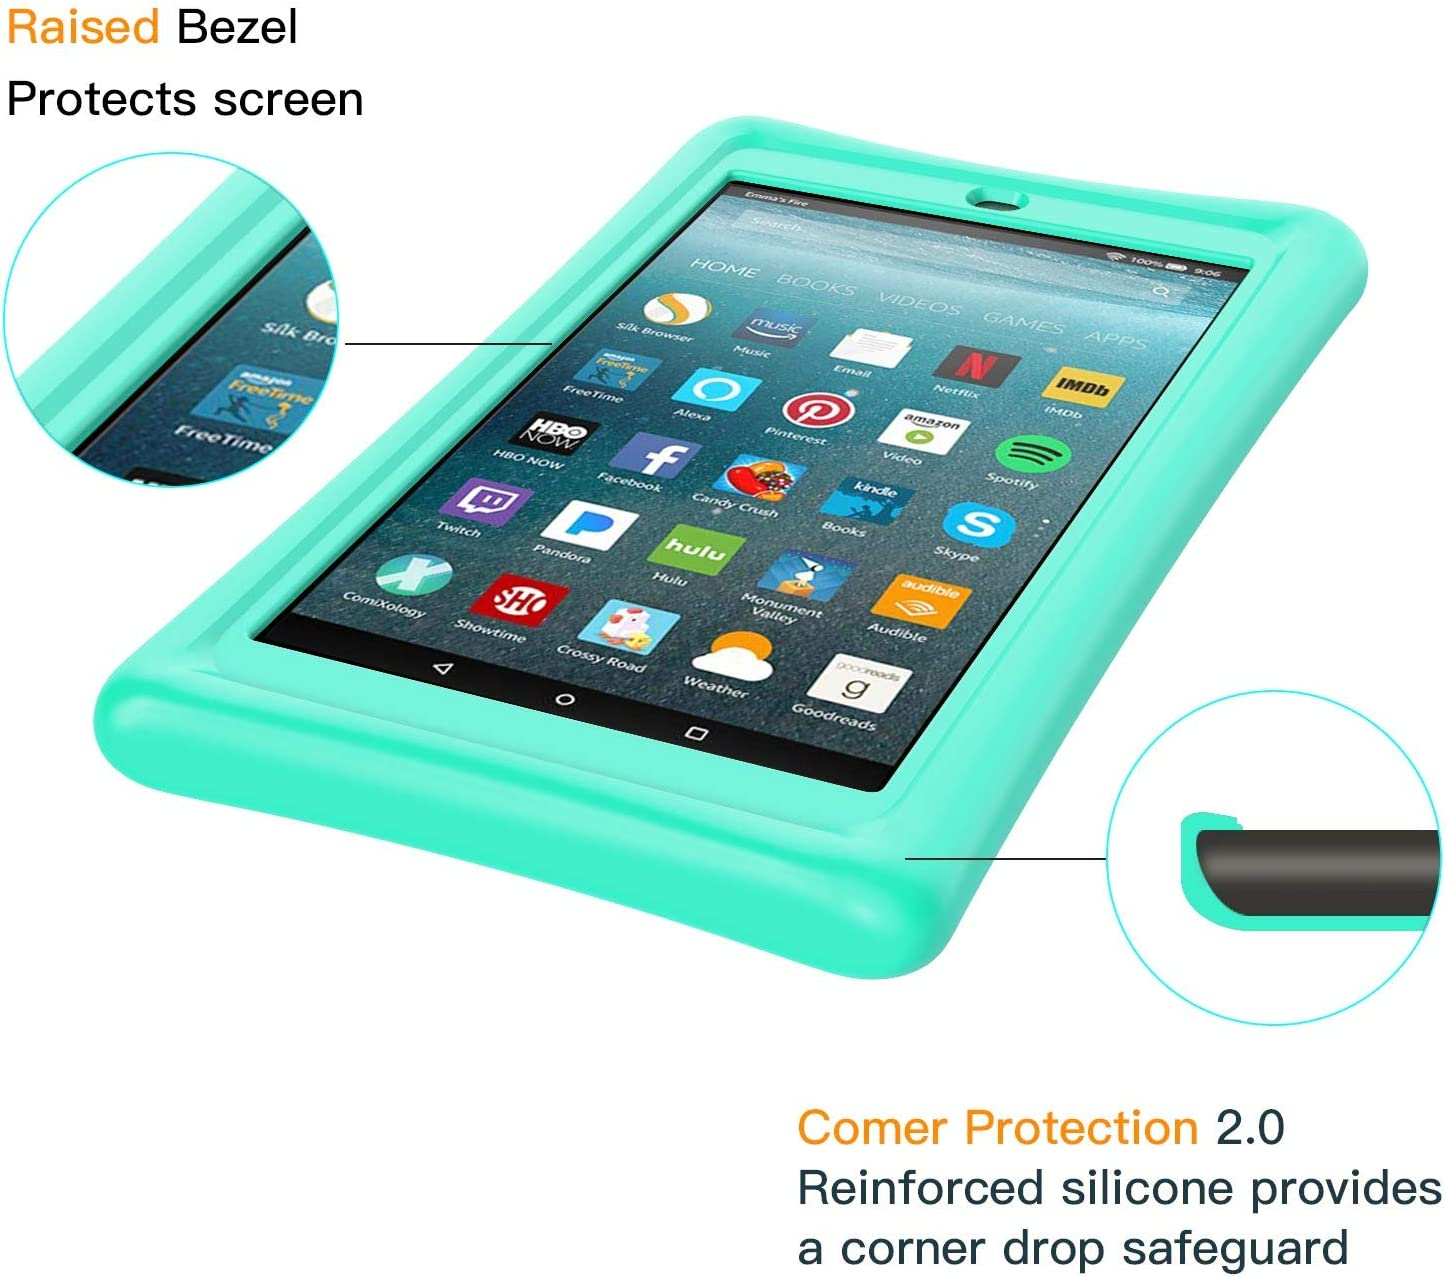 Zotoyi Benazcap Silicone Case for Fire 7 Tablet 2019 (9th Generation) - Shockproof Slim Kids Friendly Protective Cover for Fire 7 Tablet (ONLY for 9th Generation 2019) (Green)